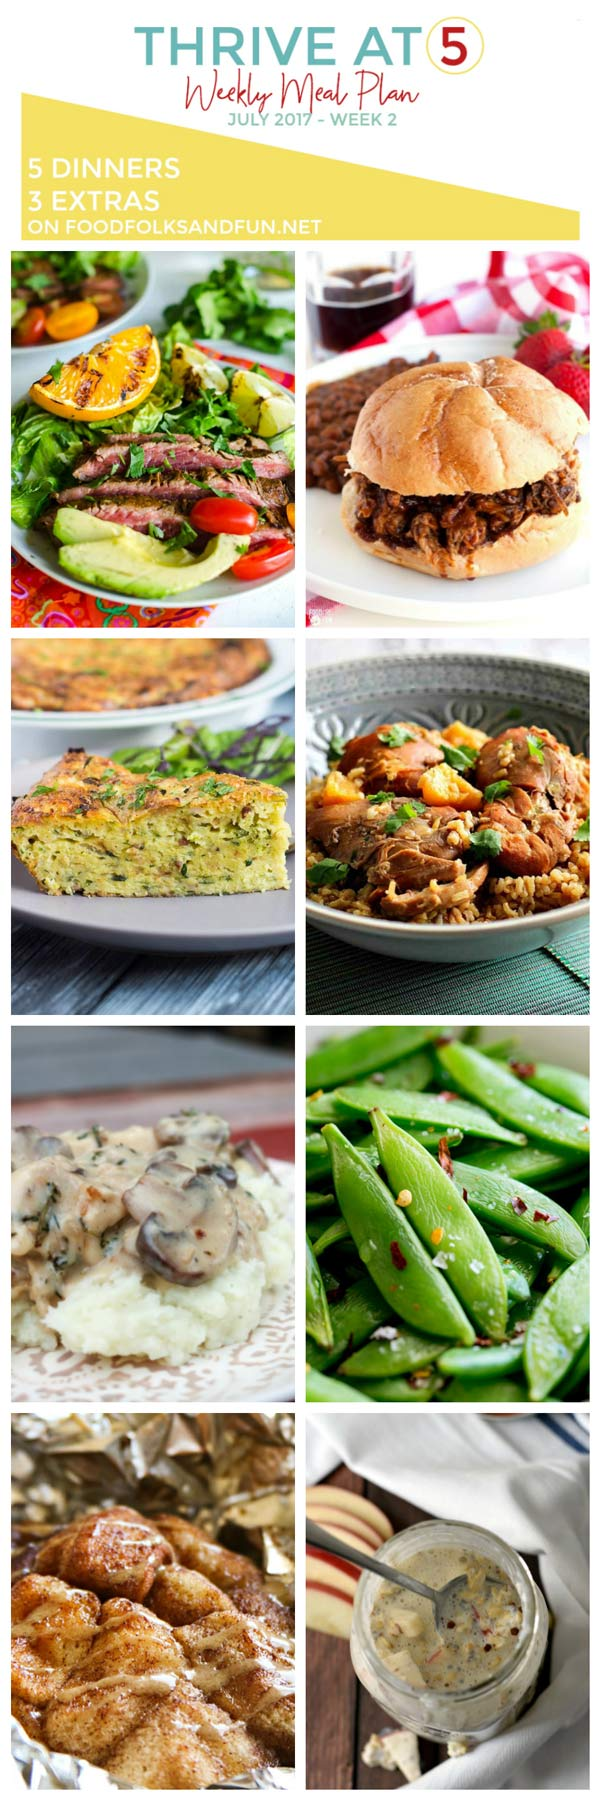 Various dinner options with text overlay for Pinterest